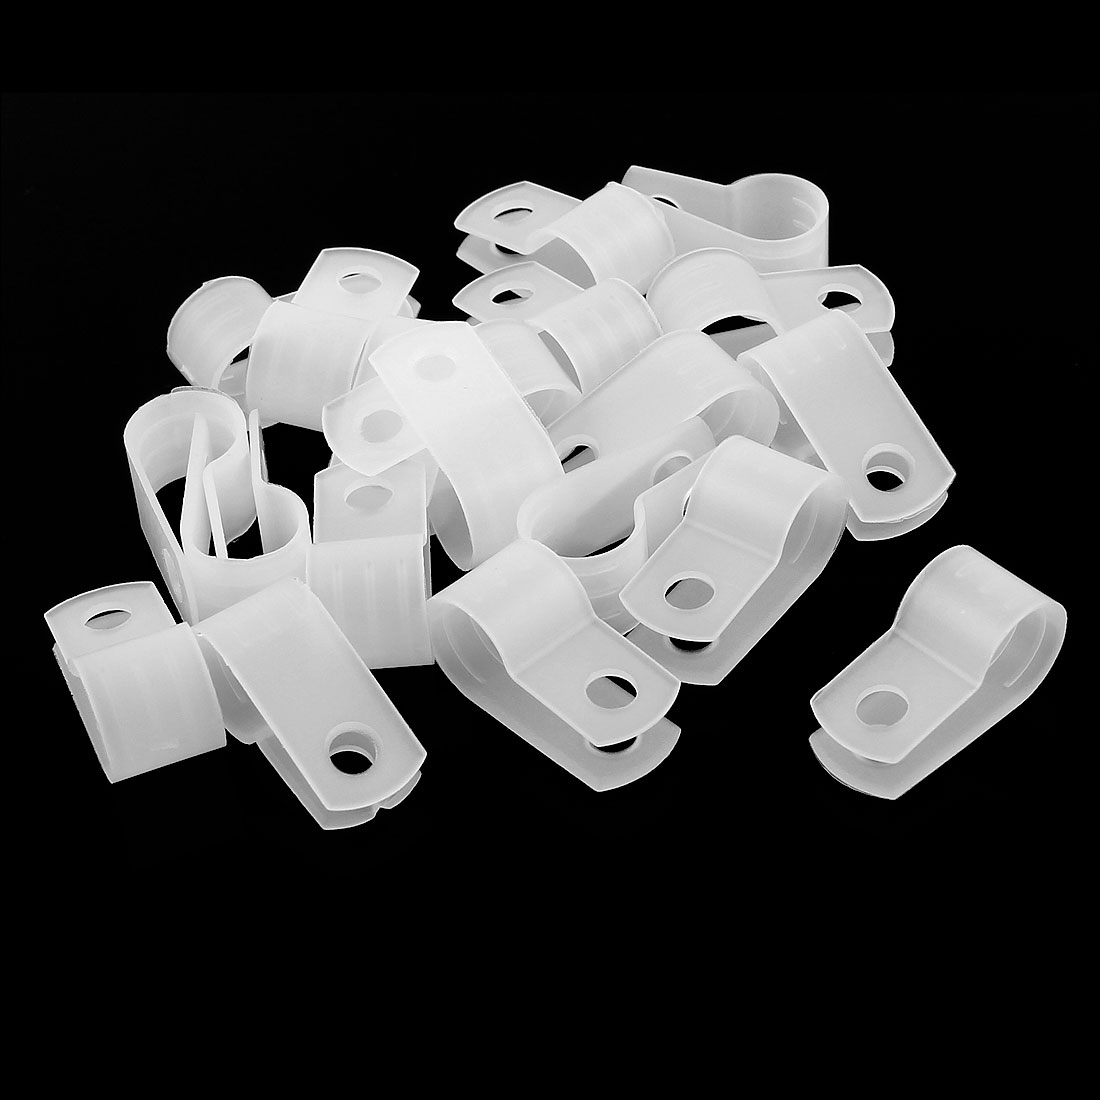 20Pcs White Plastic R Type Cable Clip Clamp for 8.4mm Dia Wire Hose Tube